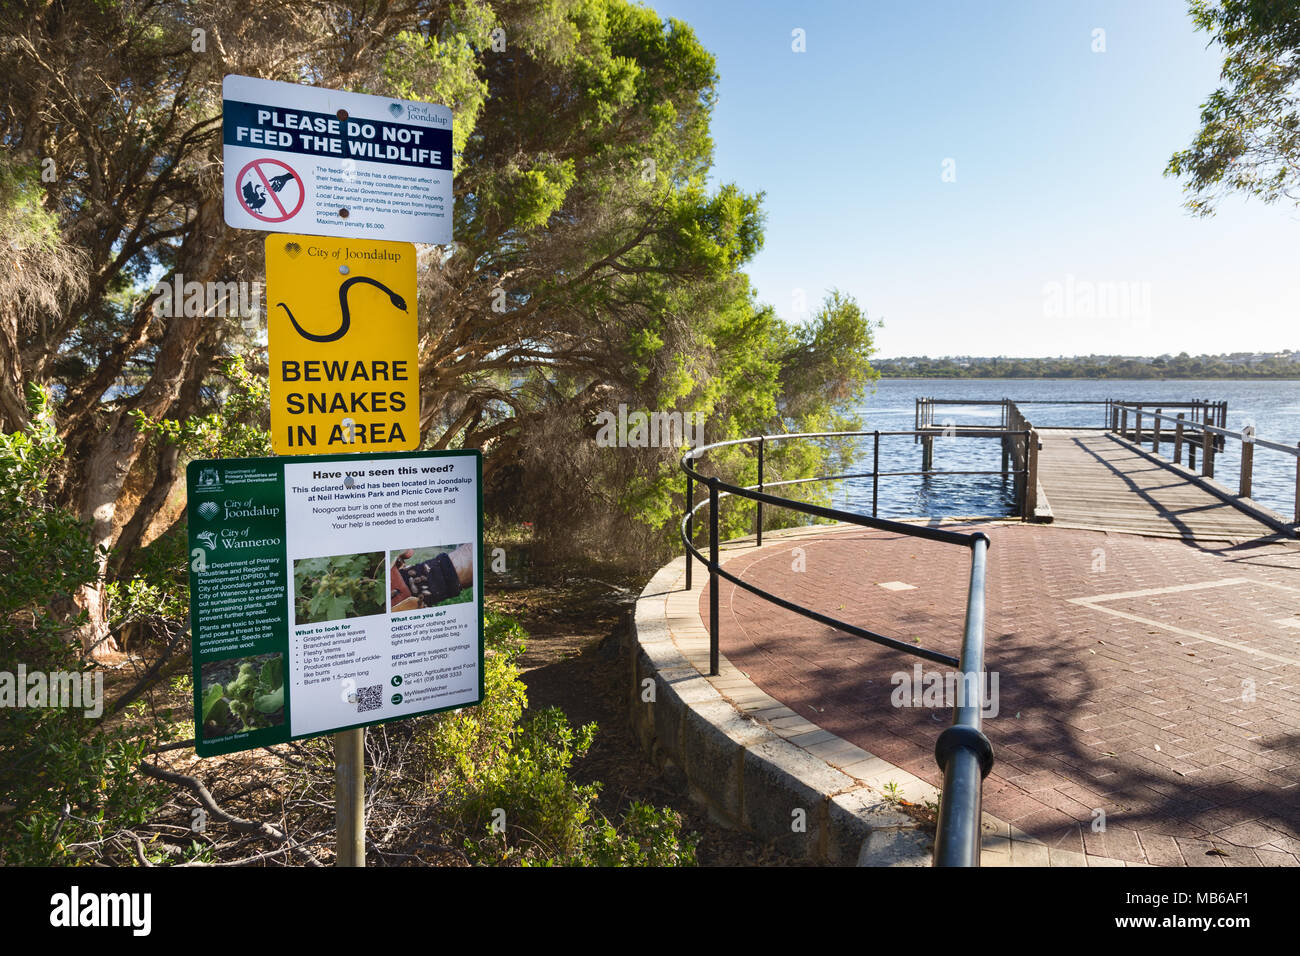 Information boards at Neil Hawkins Park, Lake Joondalup, Yellagonga Regional Park, Perth, Western Australia Stock Photo